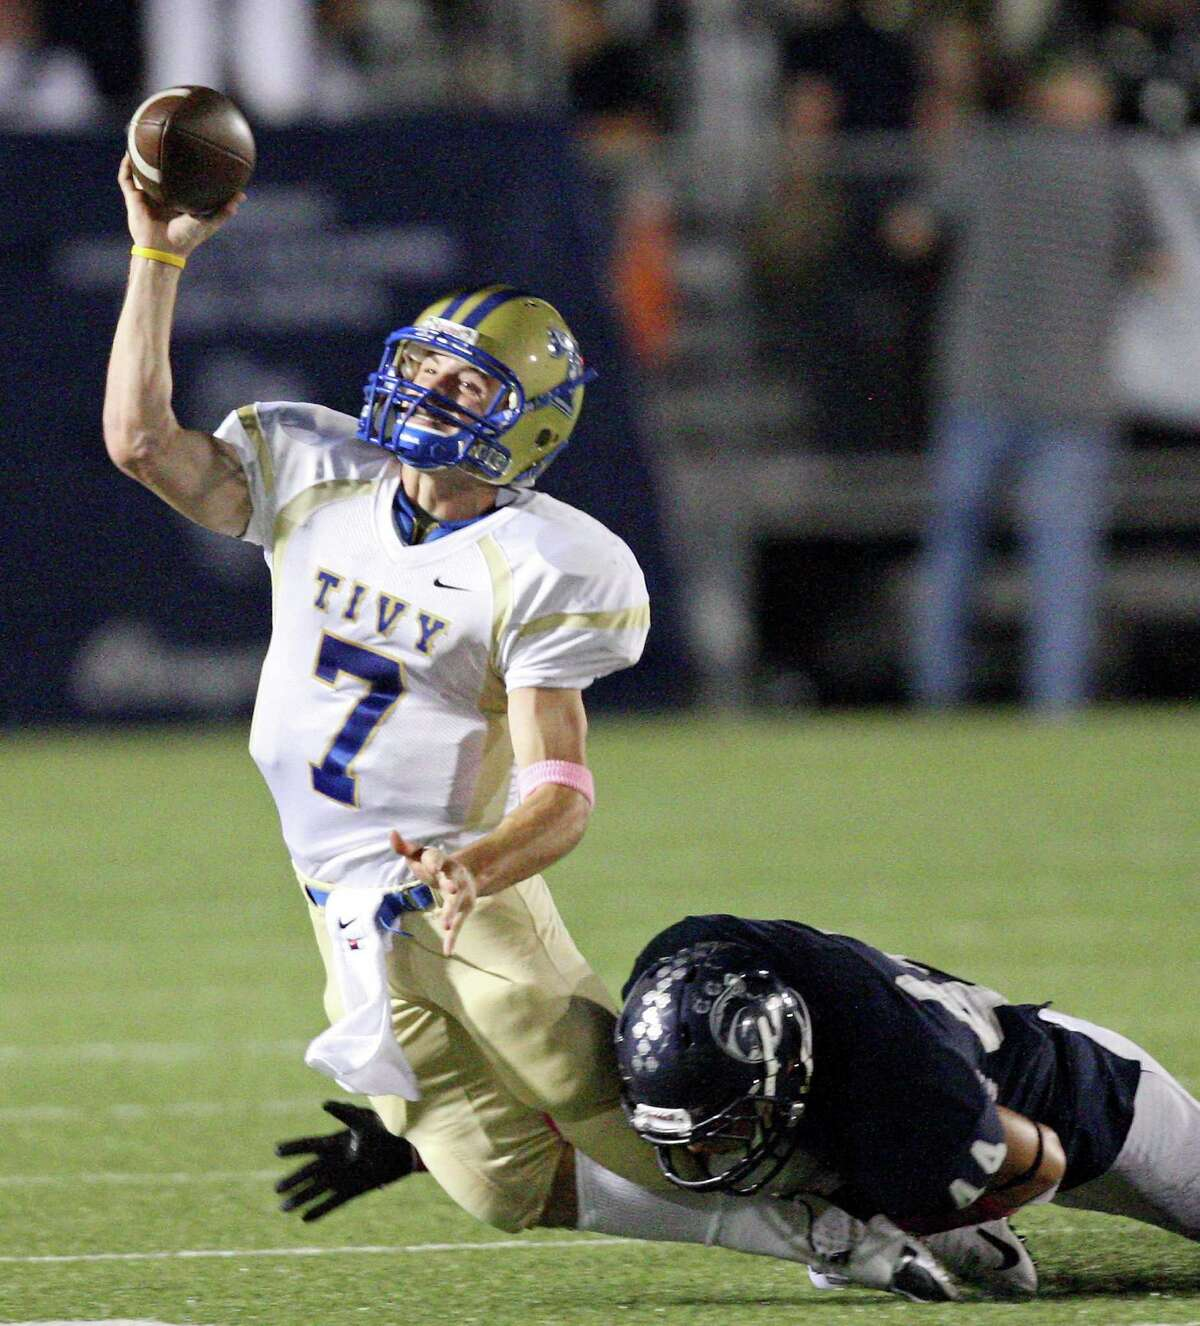 Kerrville Tivy's Parks McNeil passes under pressure from Boerne Champion's James Clarke during first half action Friday Oct. 12, 2012 at Boerne Independent School District Stadium in Boerne, TX.